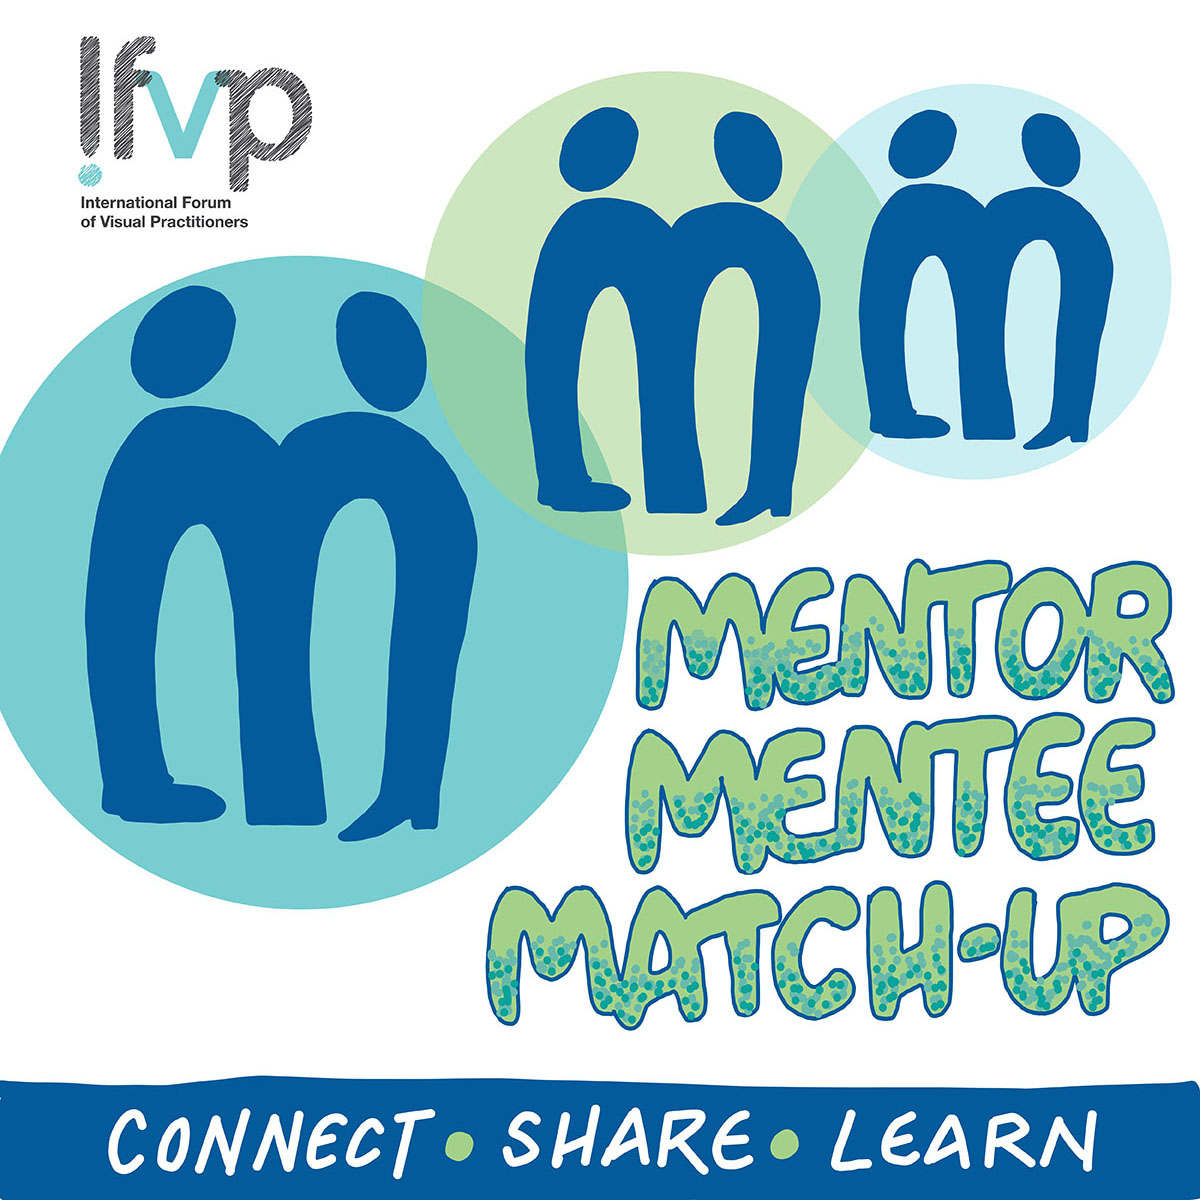 IFVP Mentor Mentee Match-up Connect Share and Learn